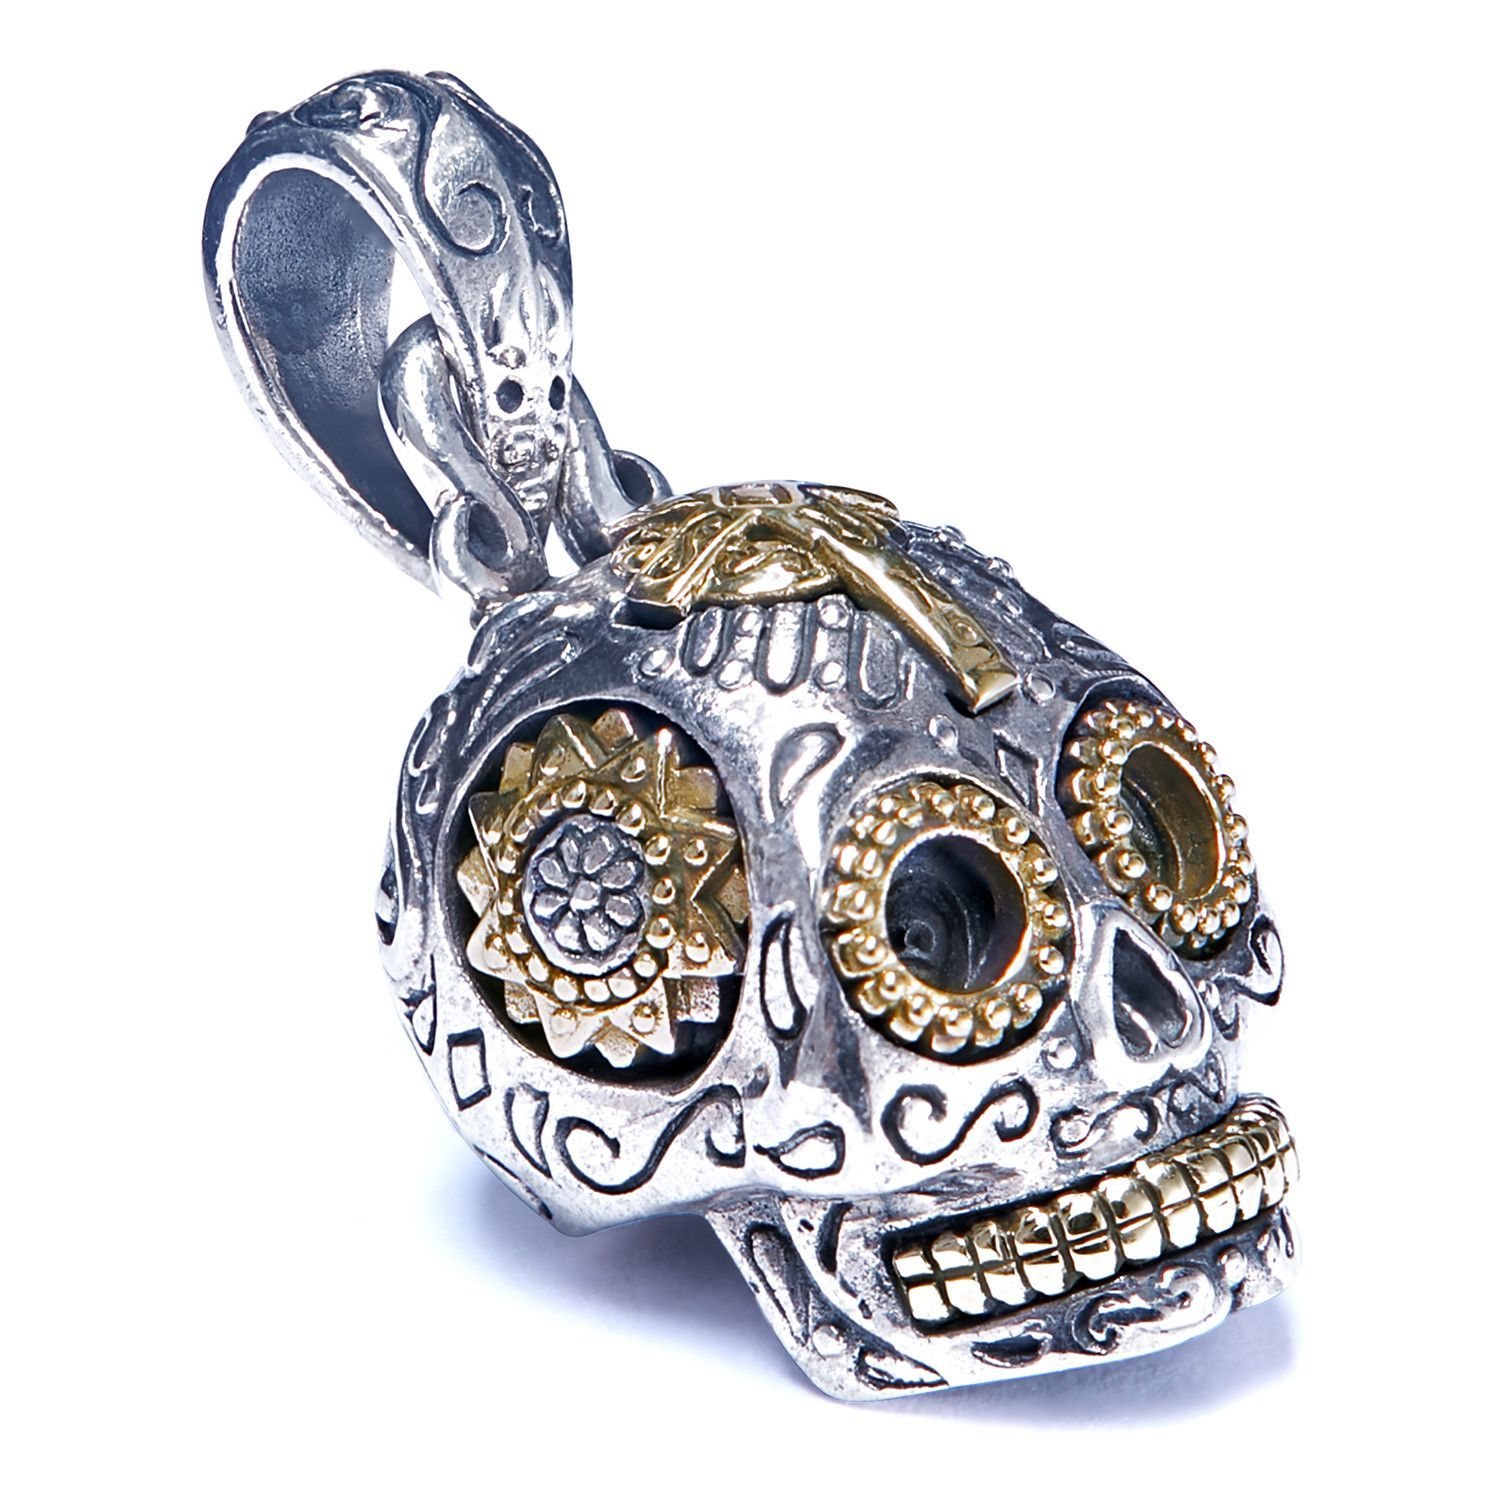 gold tattoocandy cartergore pendant flowers sugar with skull products